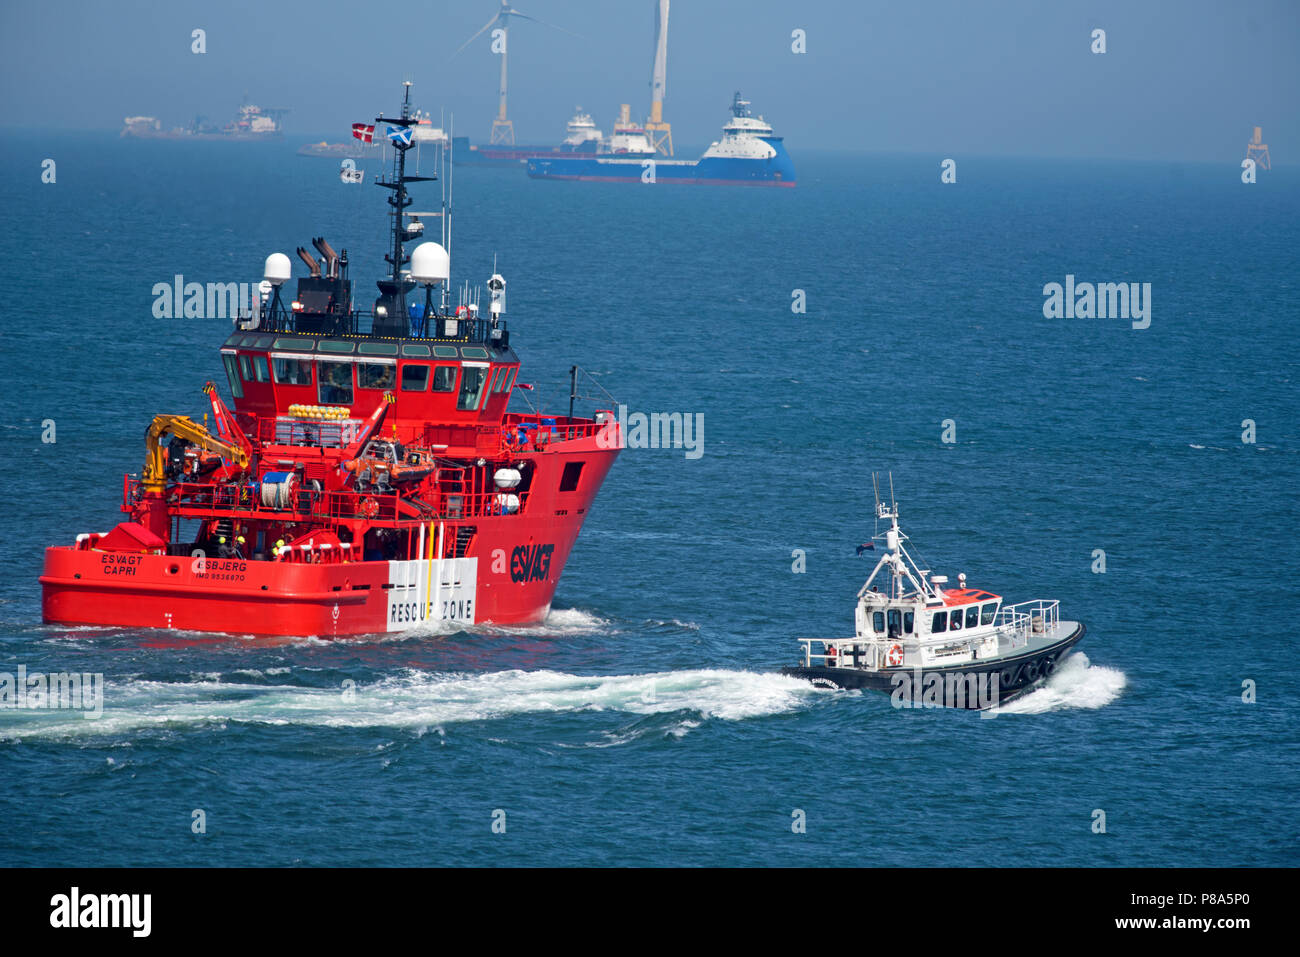 Built in Singapore the Esvagt Capri makes its way out from Aberdeen harbour escorted by the local pilot boat till 1mile out. - Stock Image